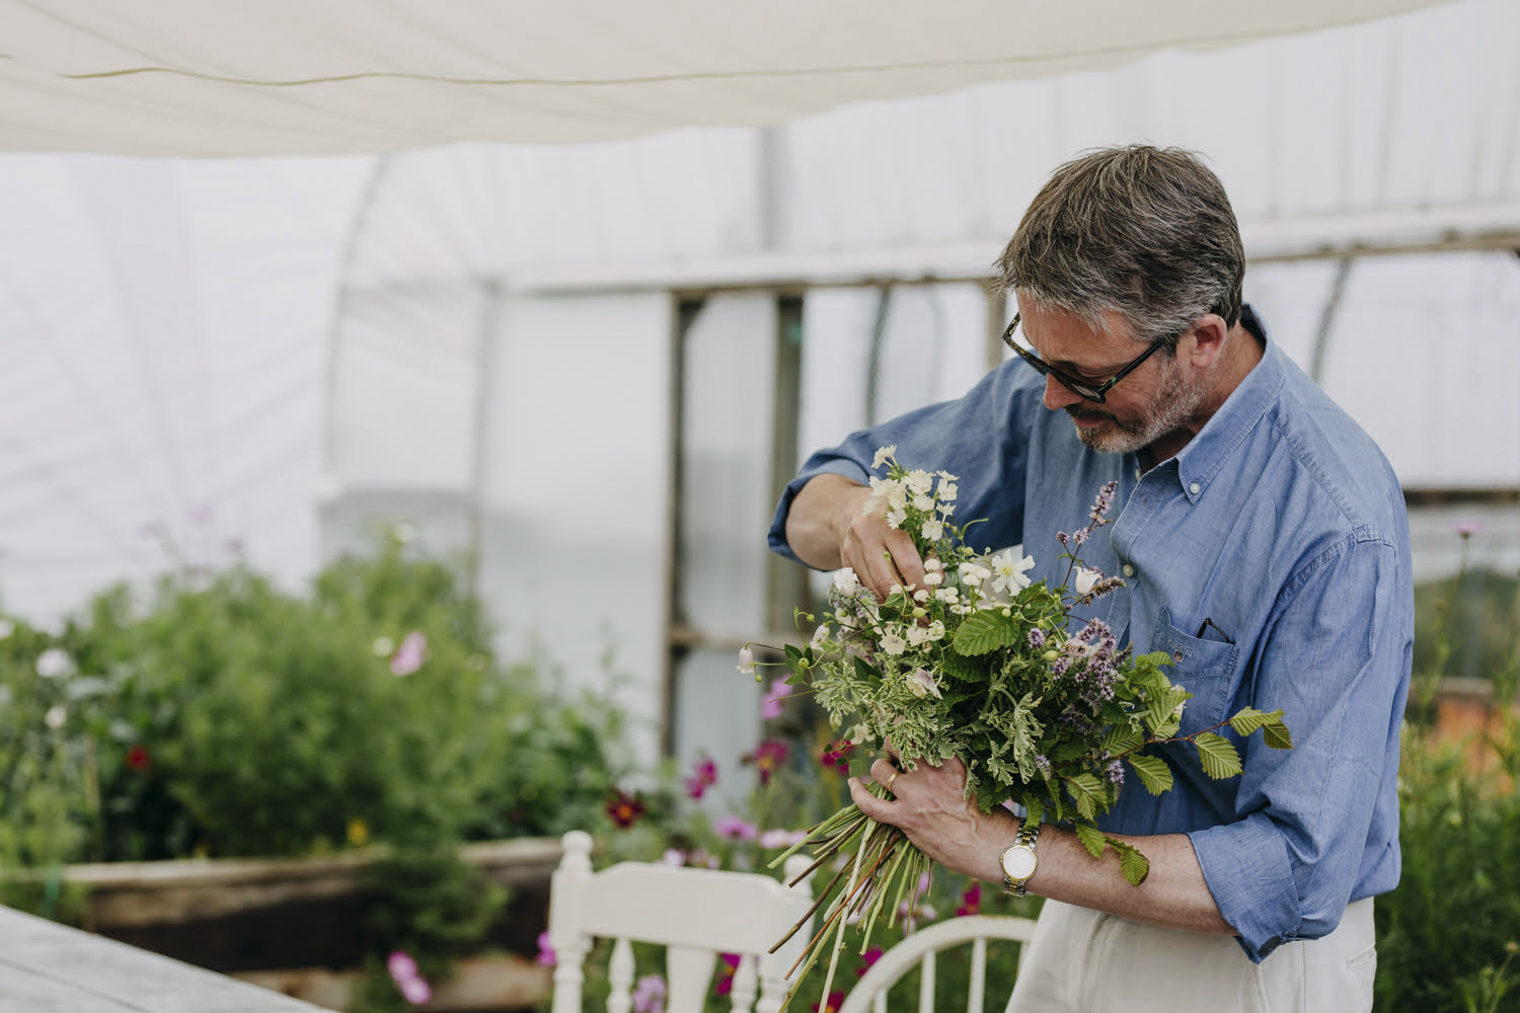 The Art of Environmental Floristry with Shane Connolly